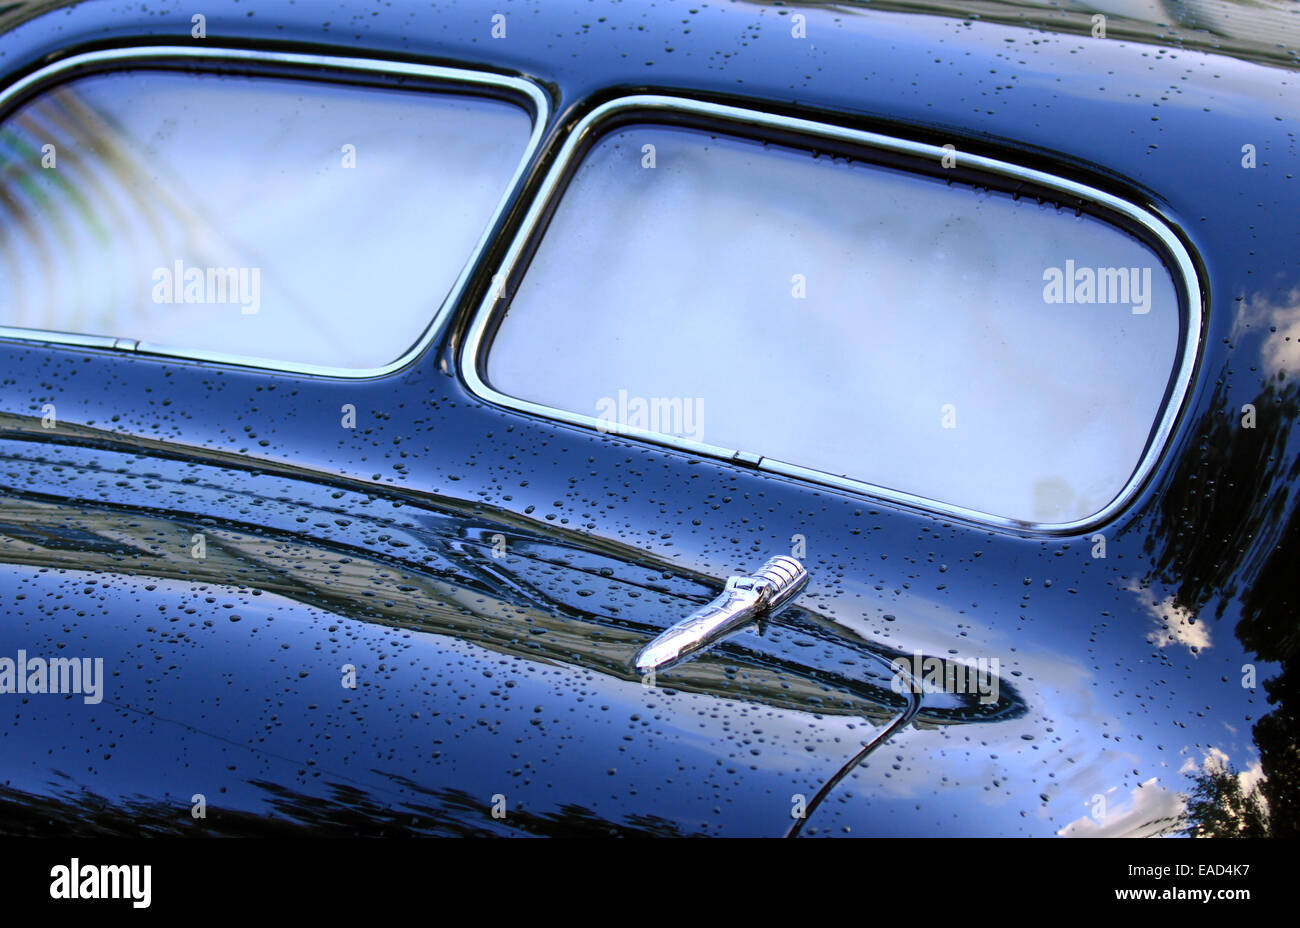 Rear window view of blue vintage car - Stock Image